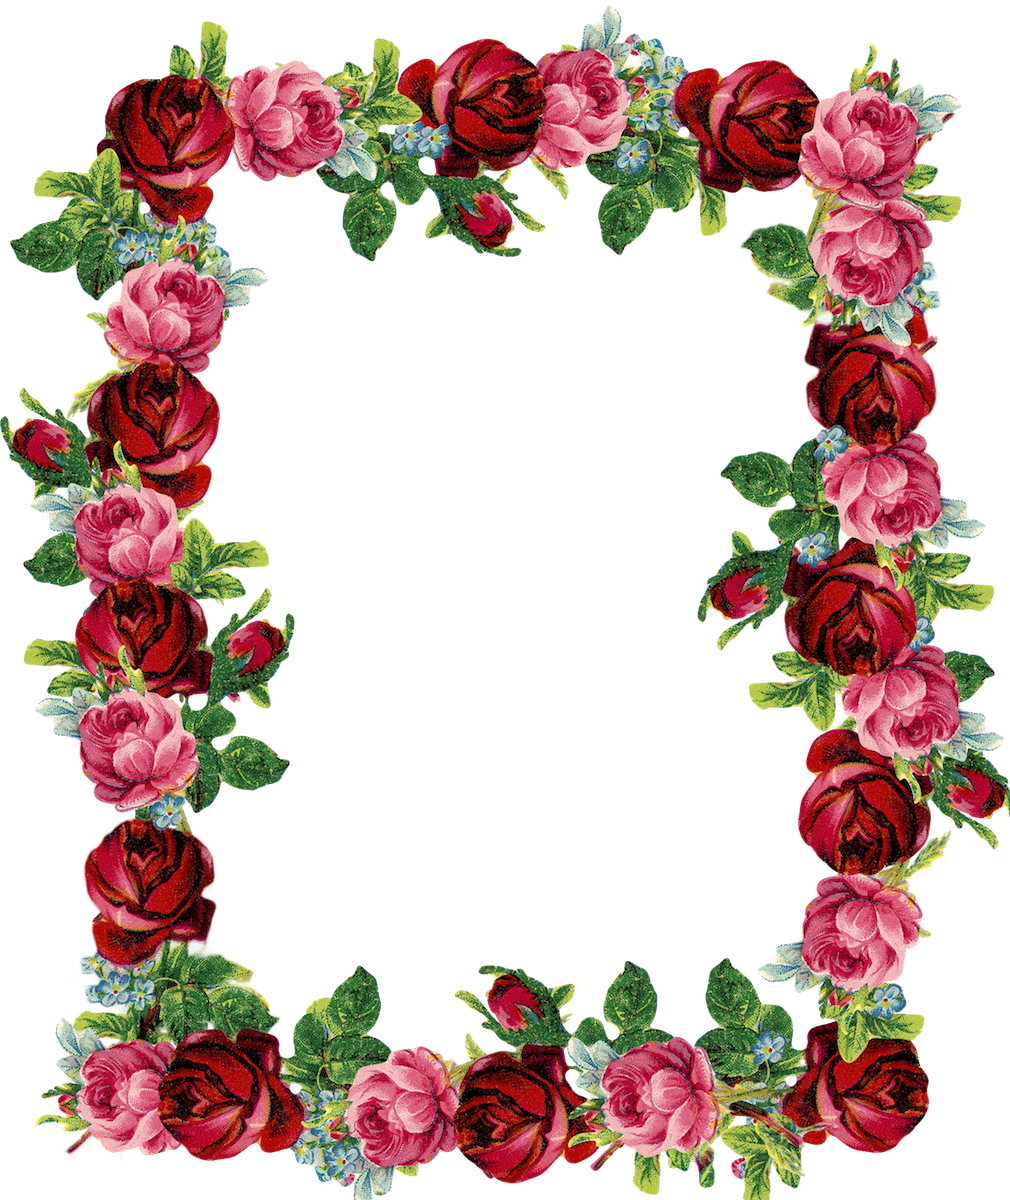 Rose border free download. Volleyball clipart vintage